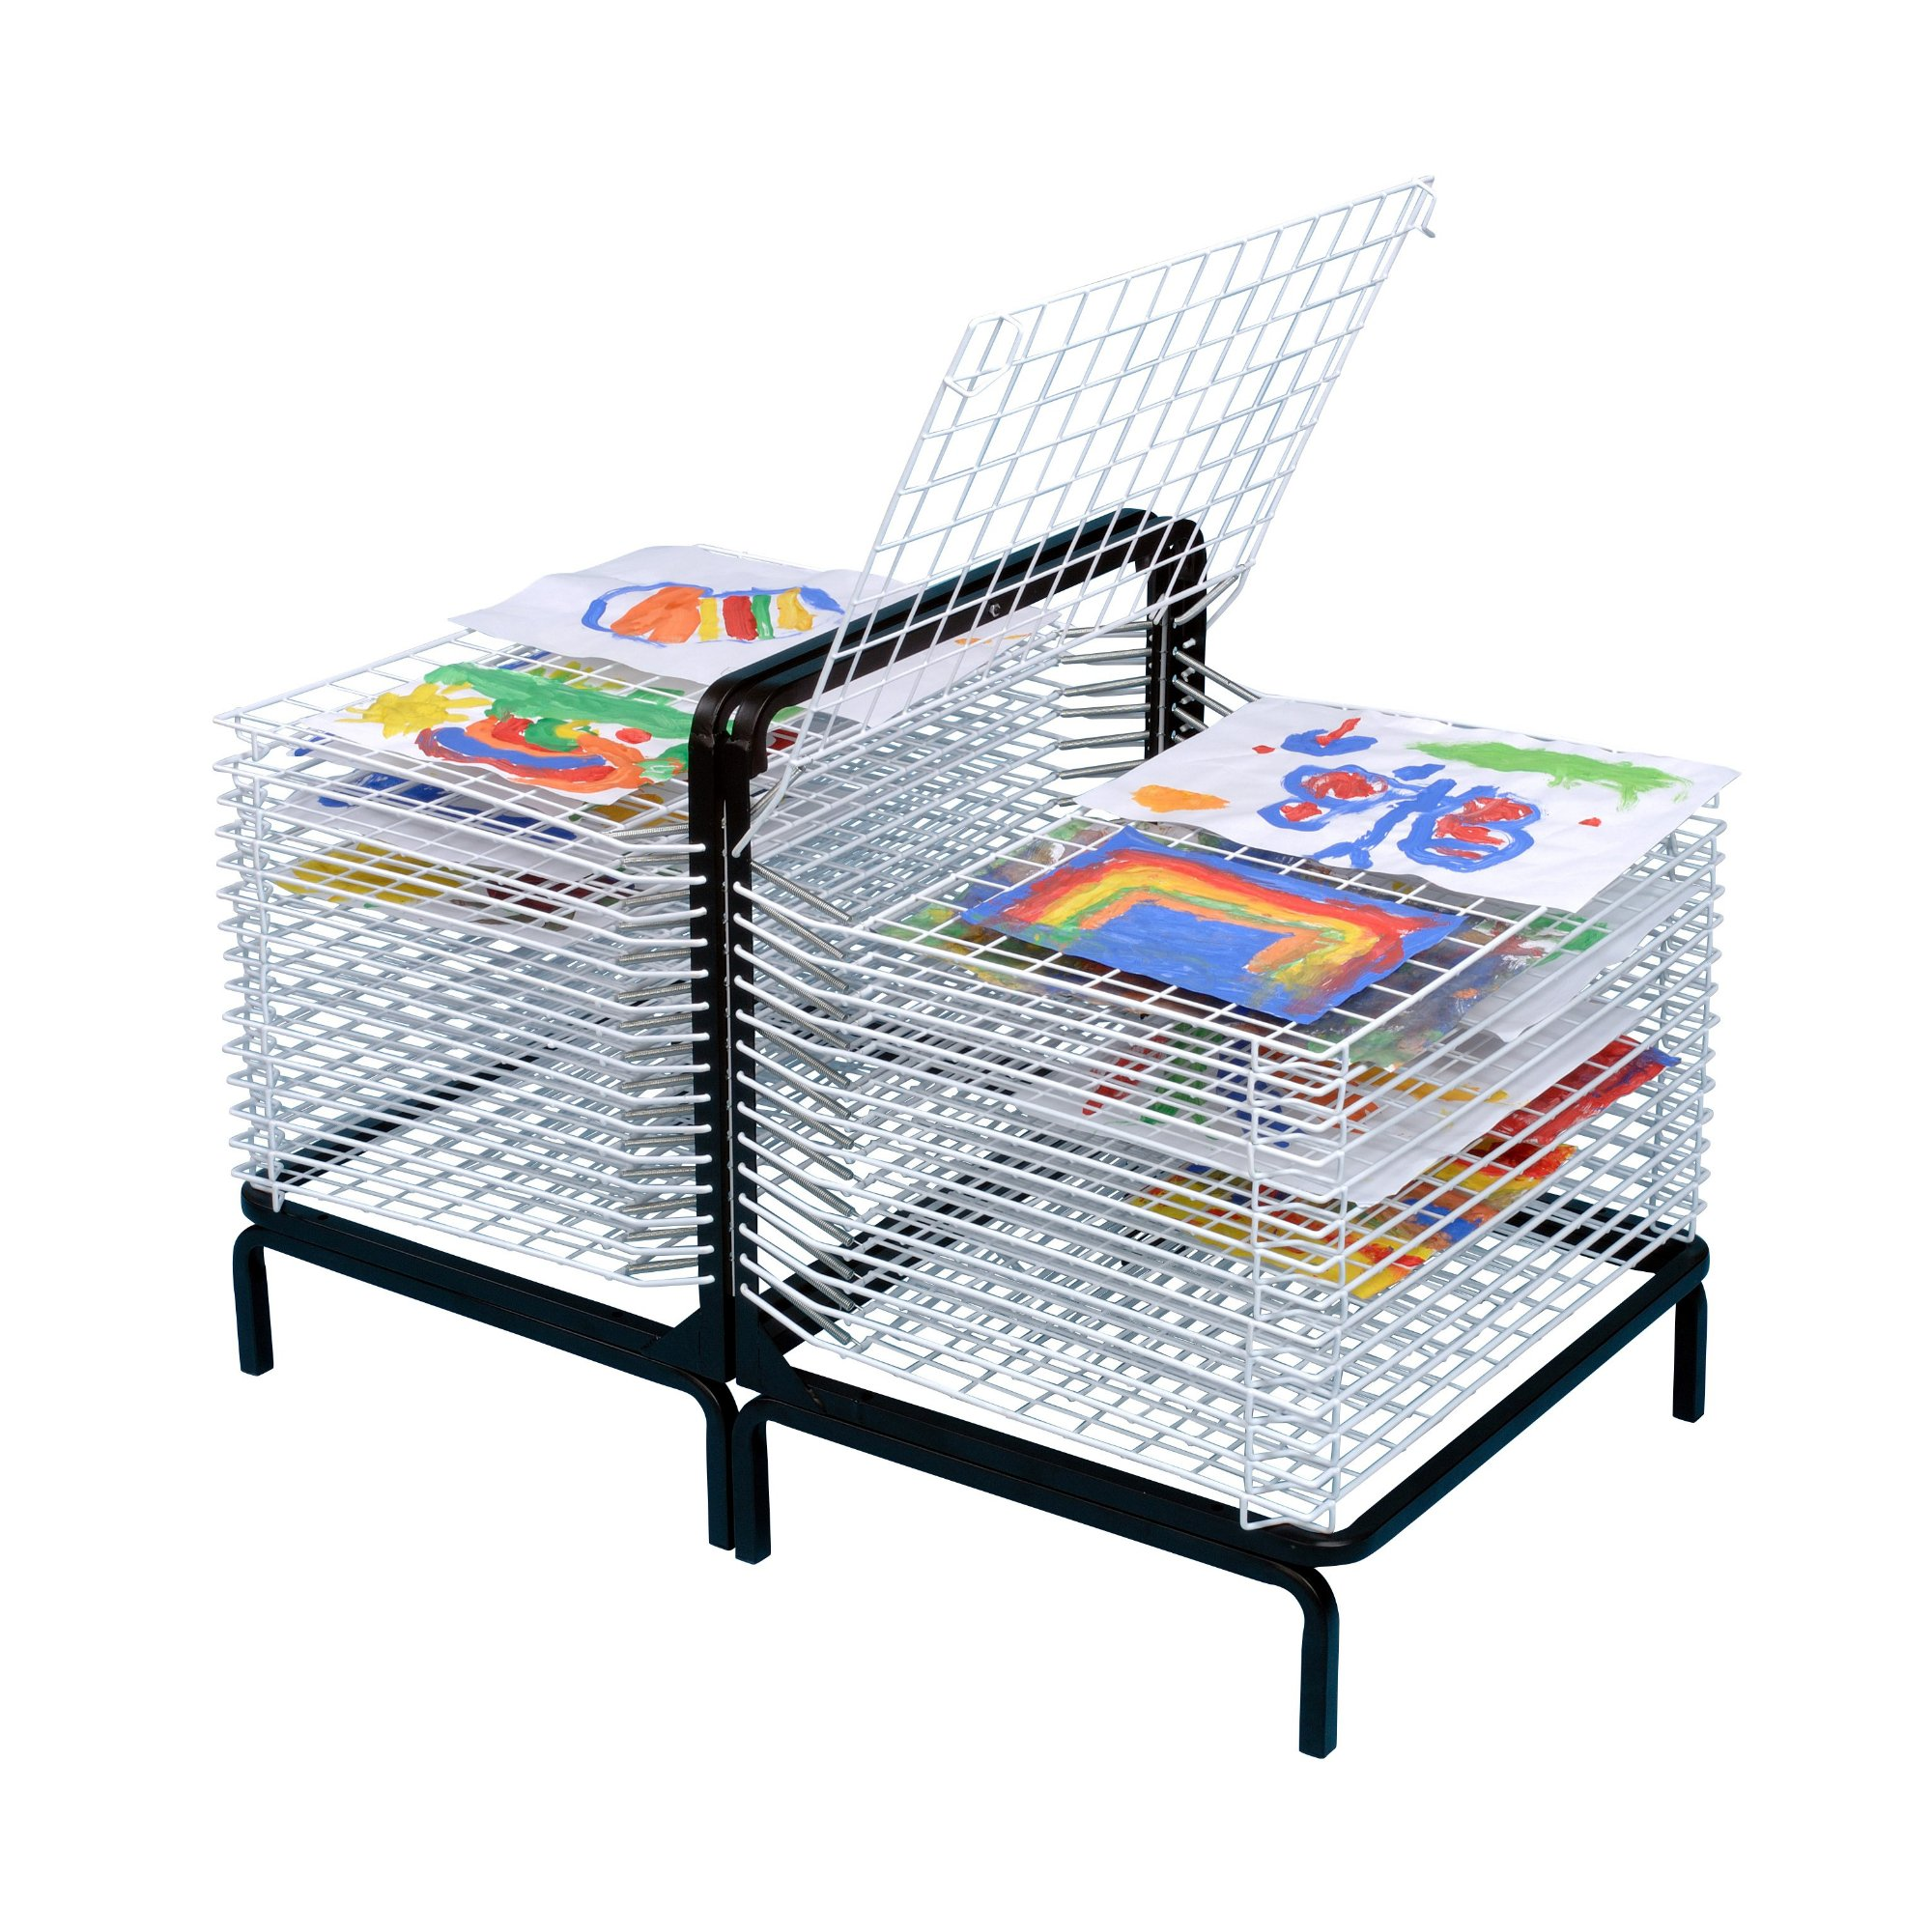 American Educational Products A-C1171 - 30 Shelf Spring Loaded Floor/Table Top Drying Rack